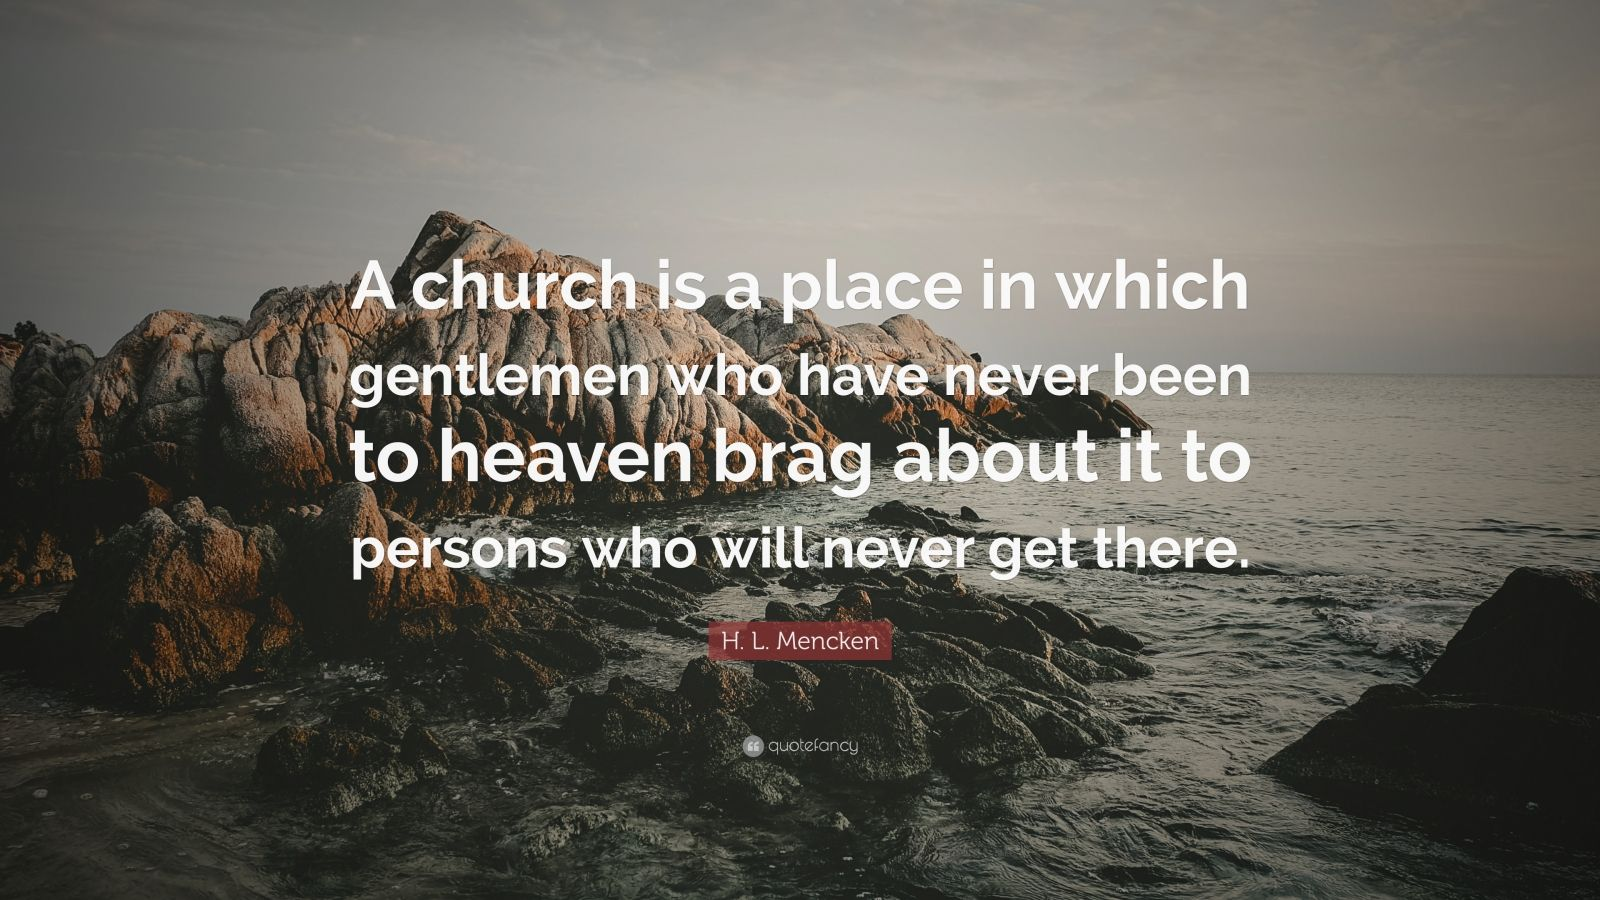 """H. L. Mencken Quote: """"A church is a place in which gentlemen who have never been to heaven brag about it to persons who will never get there."""""""